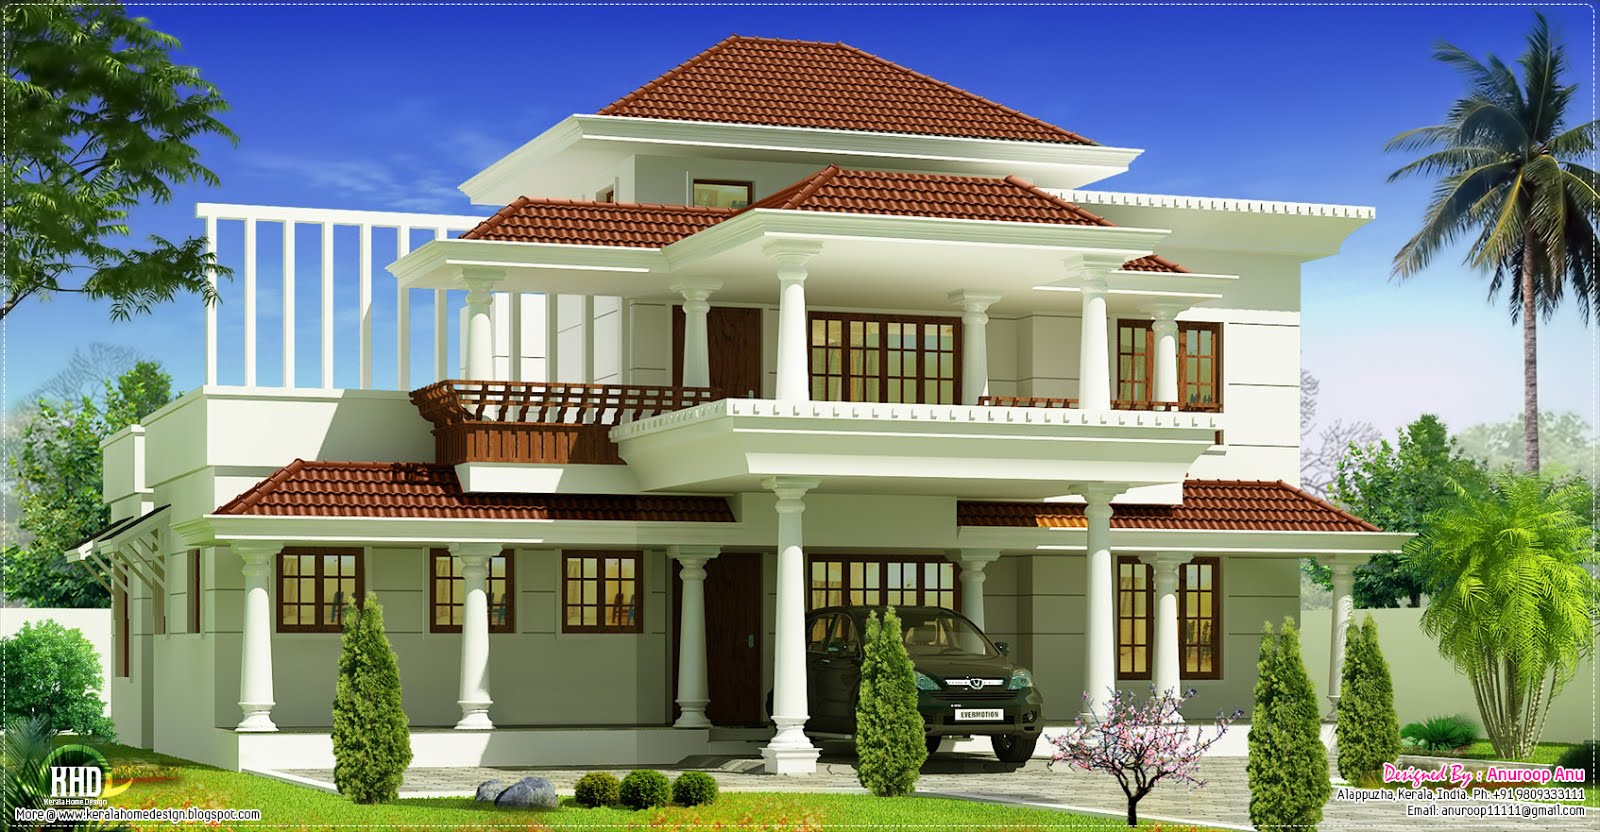 Kerala house models houses plans designs for House plans in kerala